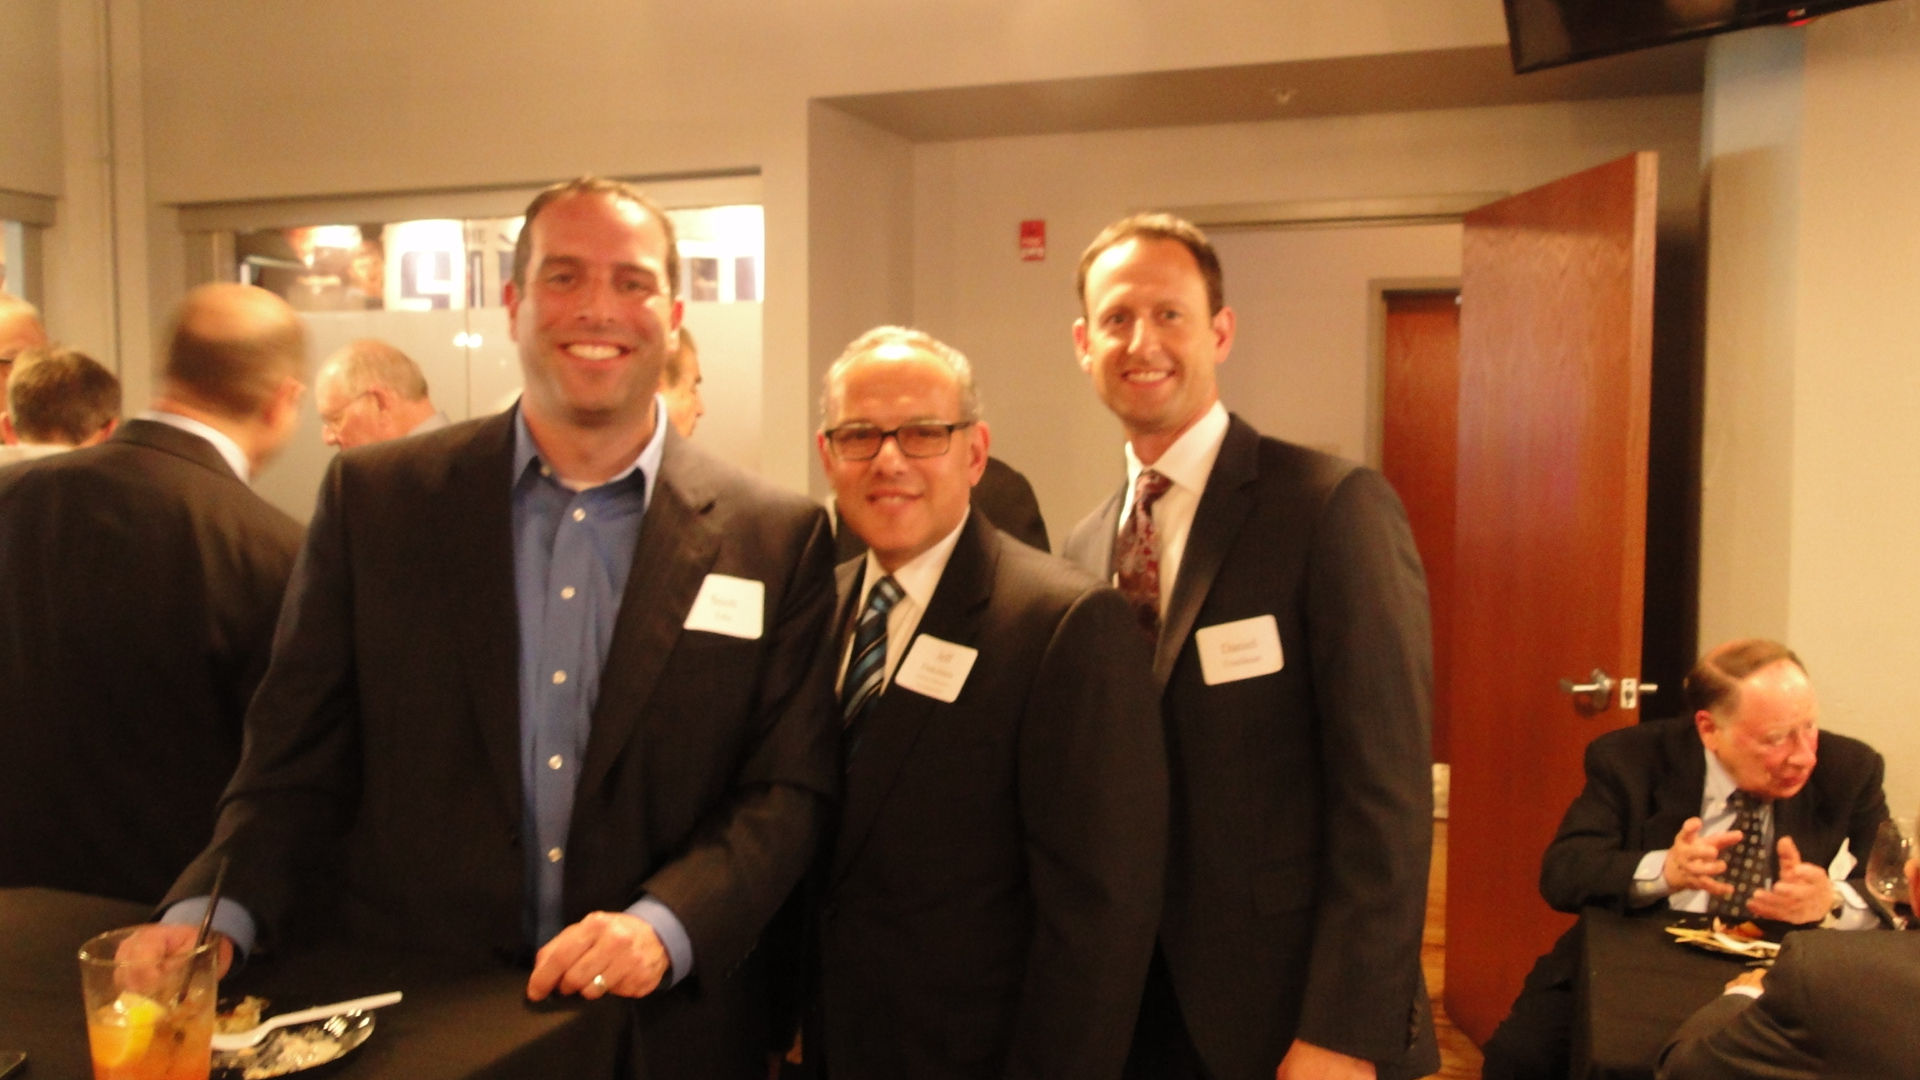 Scott Tobe, Jewish Federation President/CEO Jeff Finkelstein, and Dan Friedman